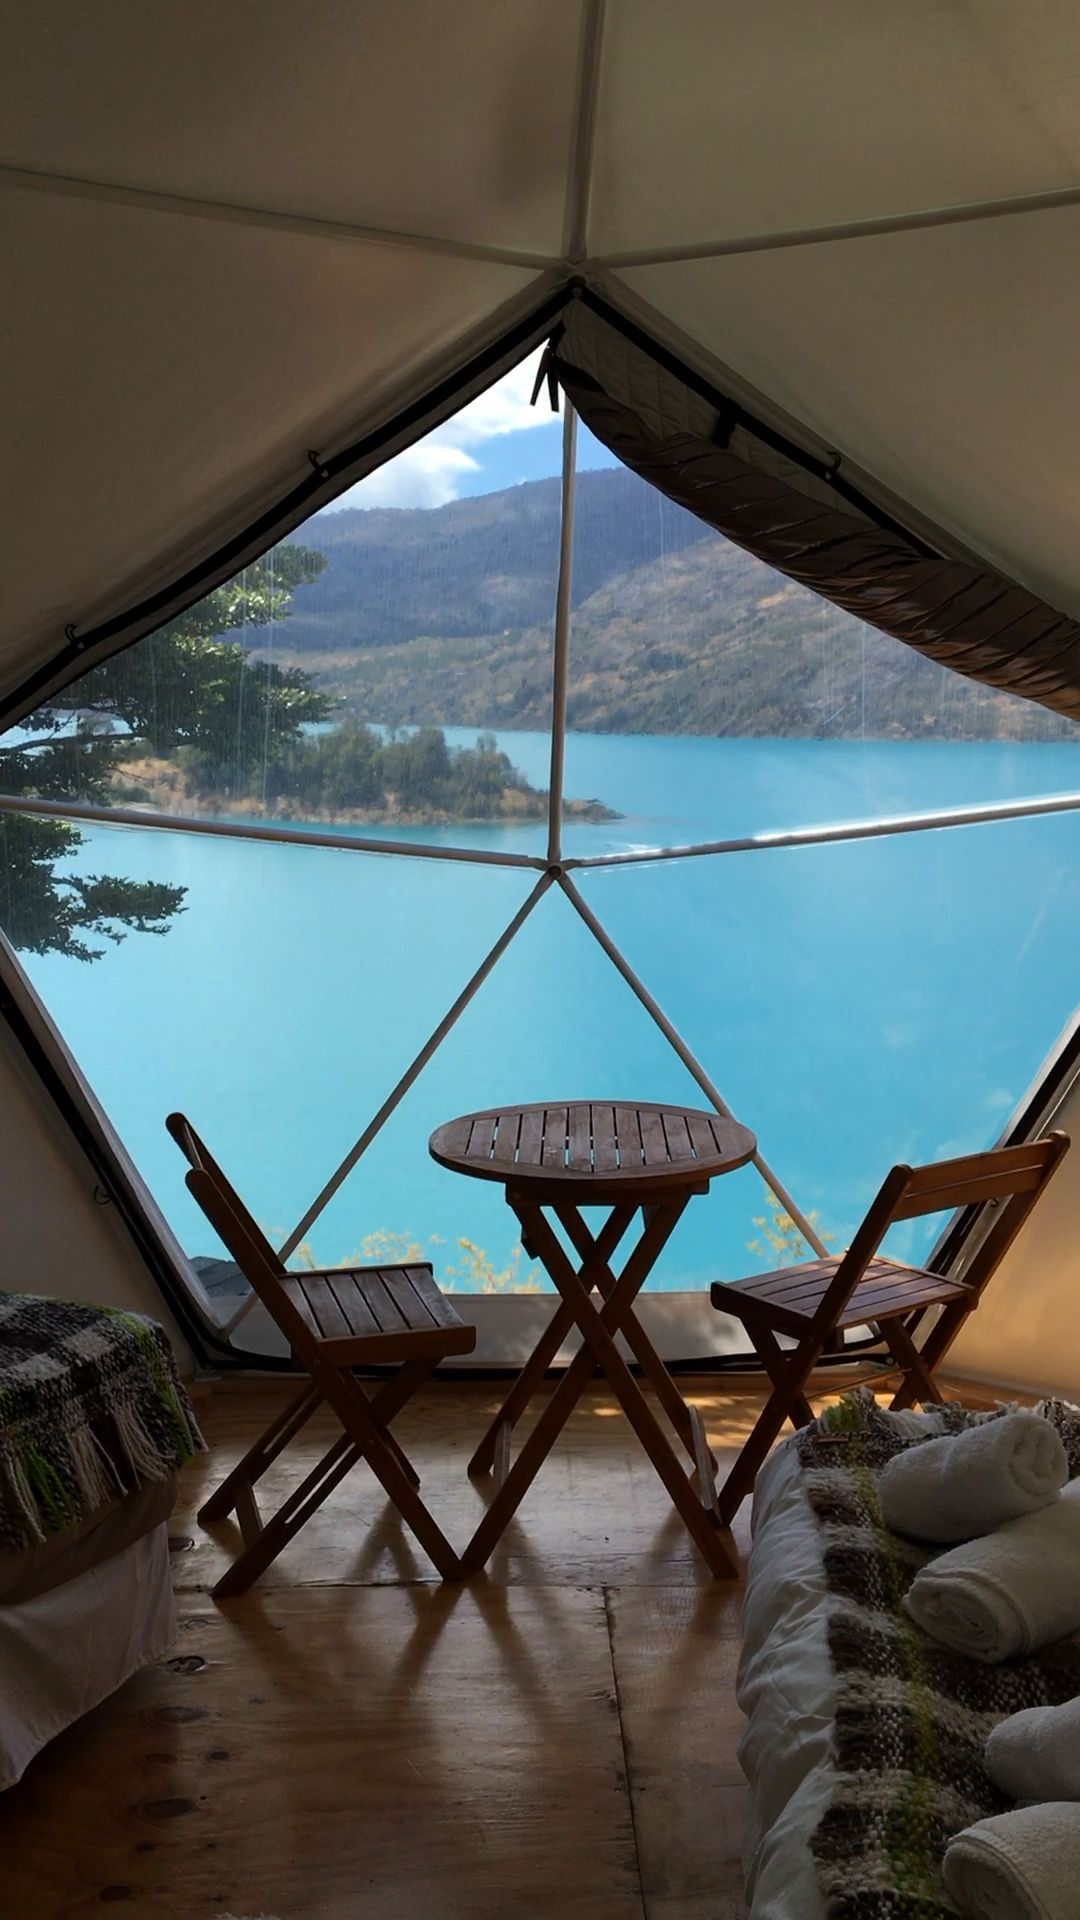 Located on the shores of the General Carrera Lake, Pared Sur Camp is an expedition center and base camp that offers dome tents, camping and rooms. Visit our Chile guide for more information on how to stay here.